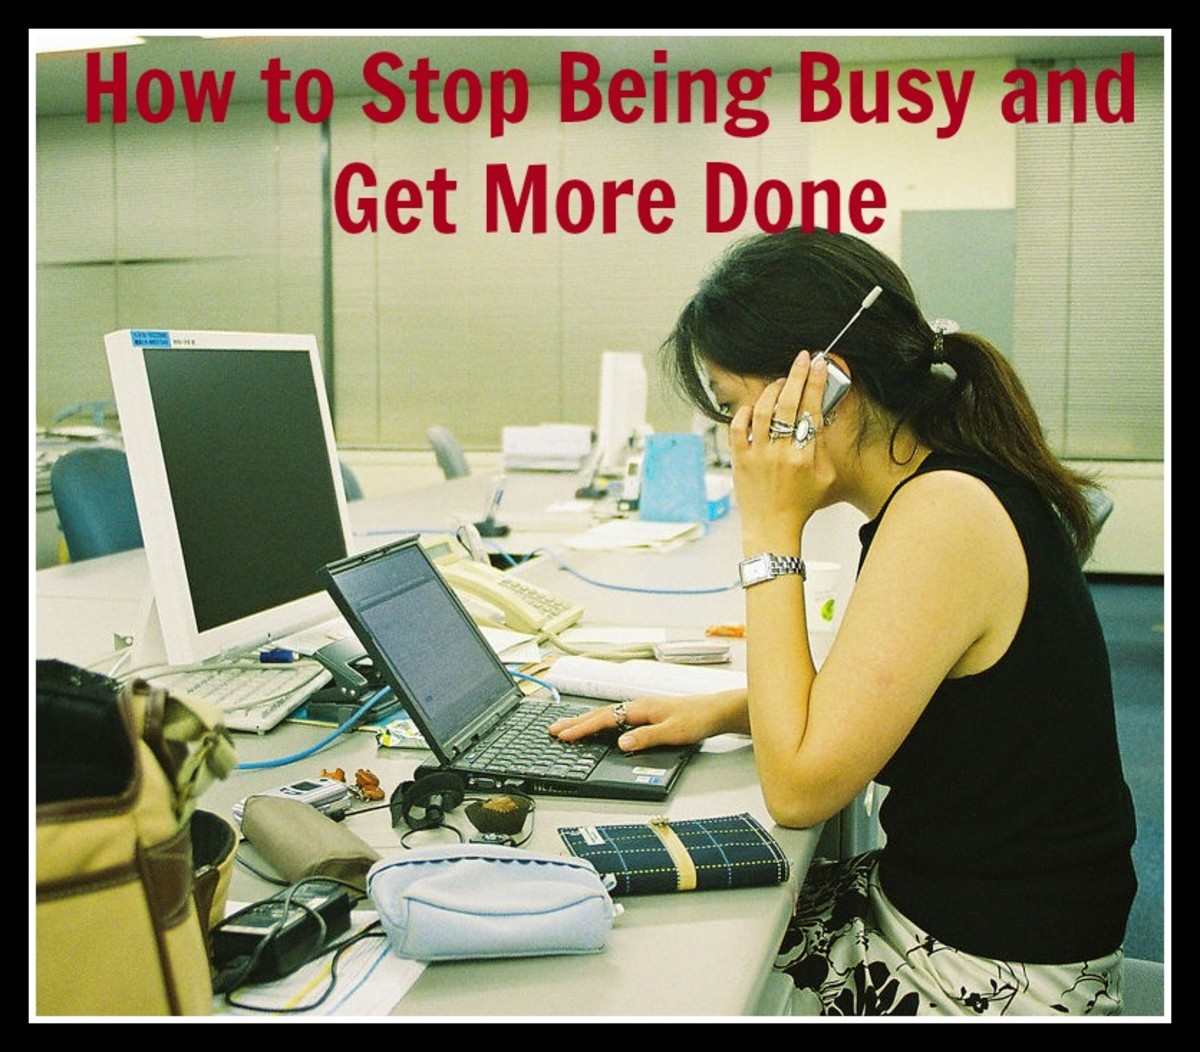 How to Become Successful by Working Less